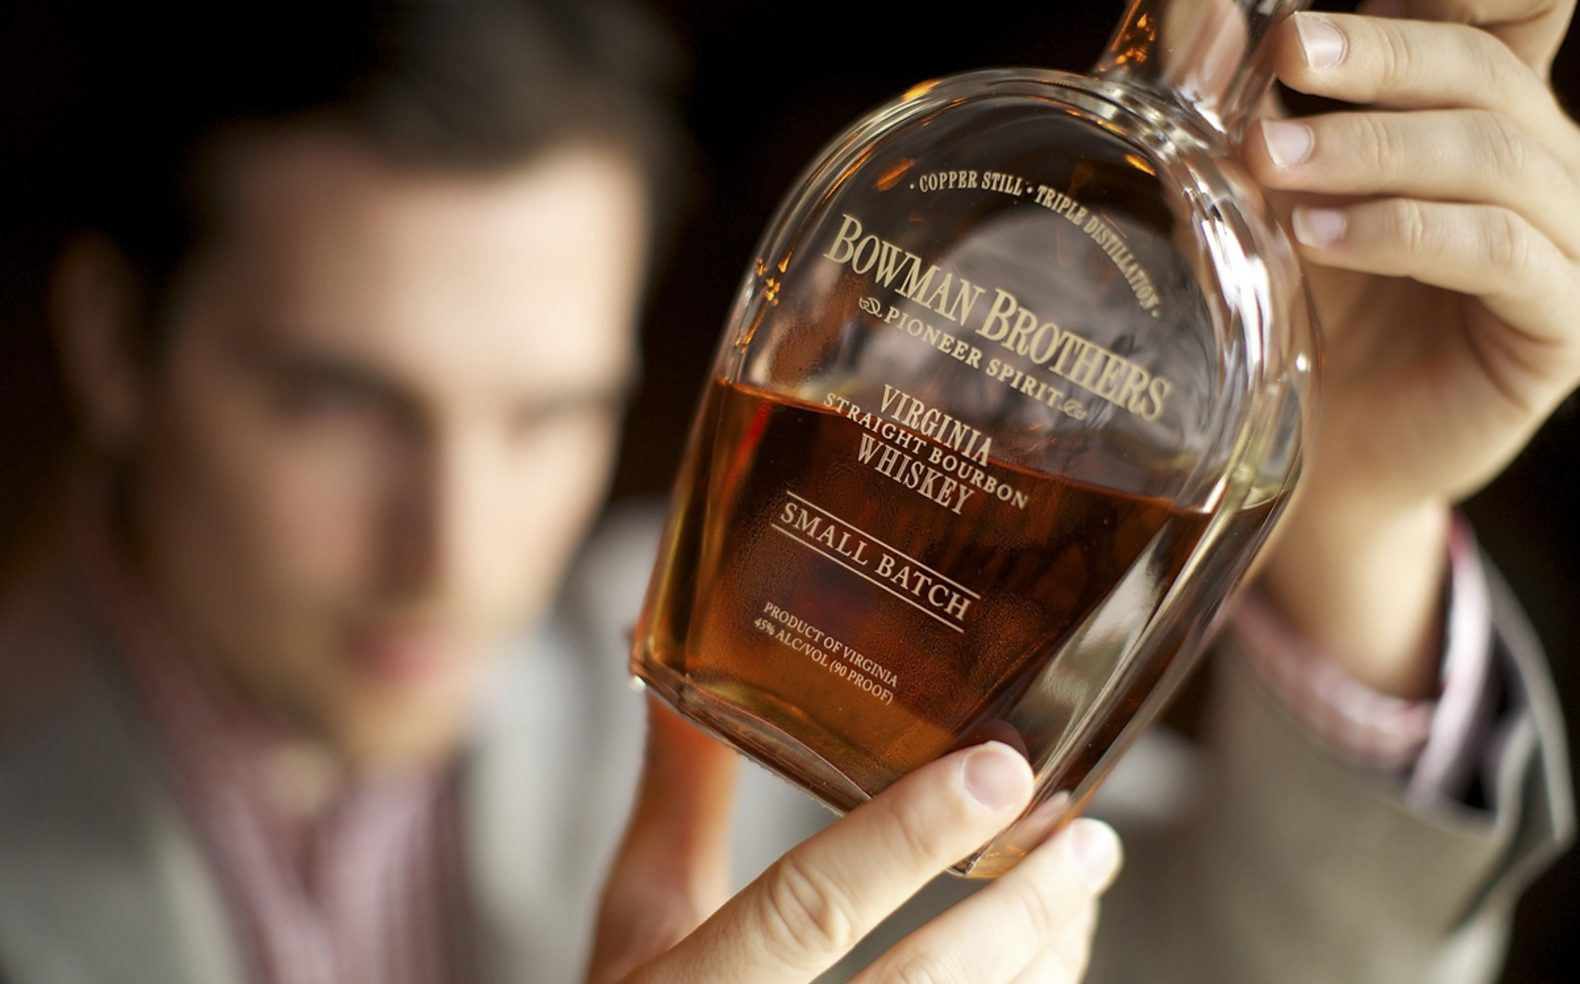 A bottle of Virginia whiskey in the foreground being held and inspected by a man out of focus in the background.